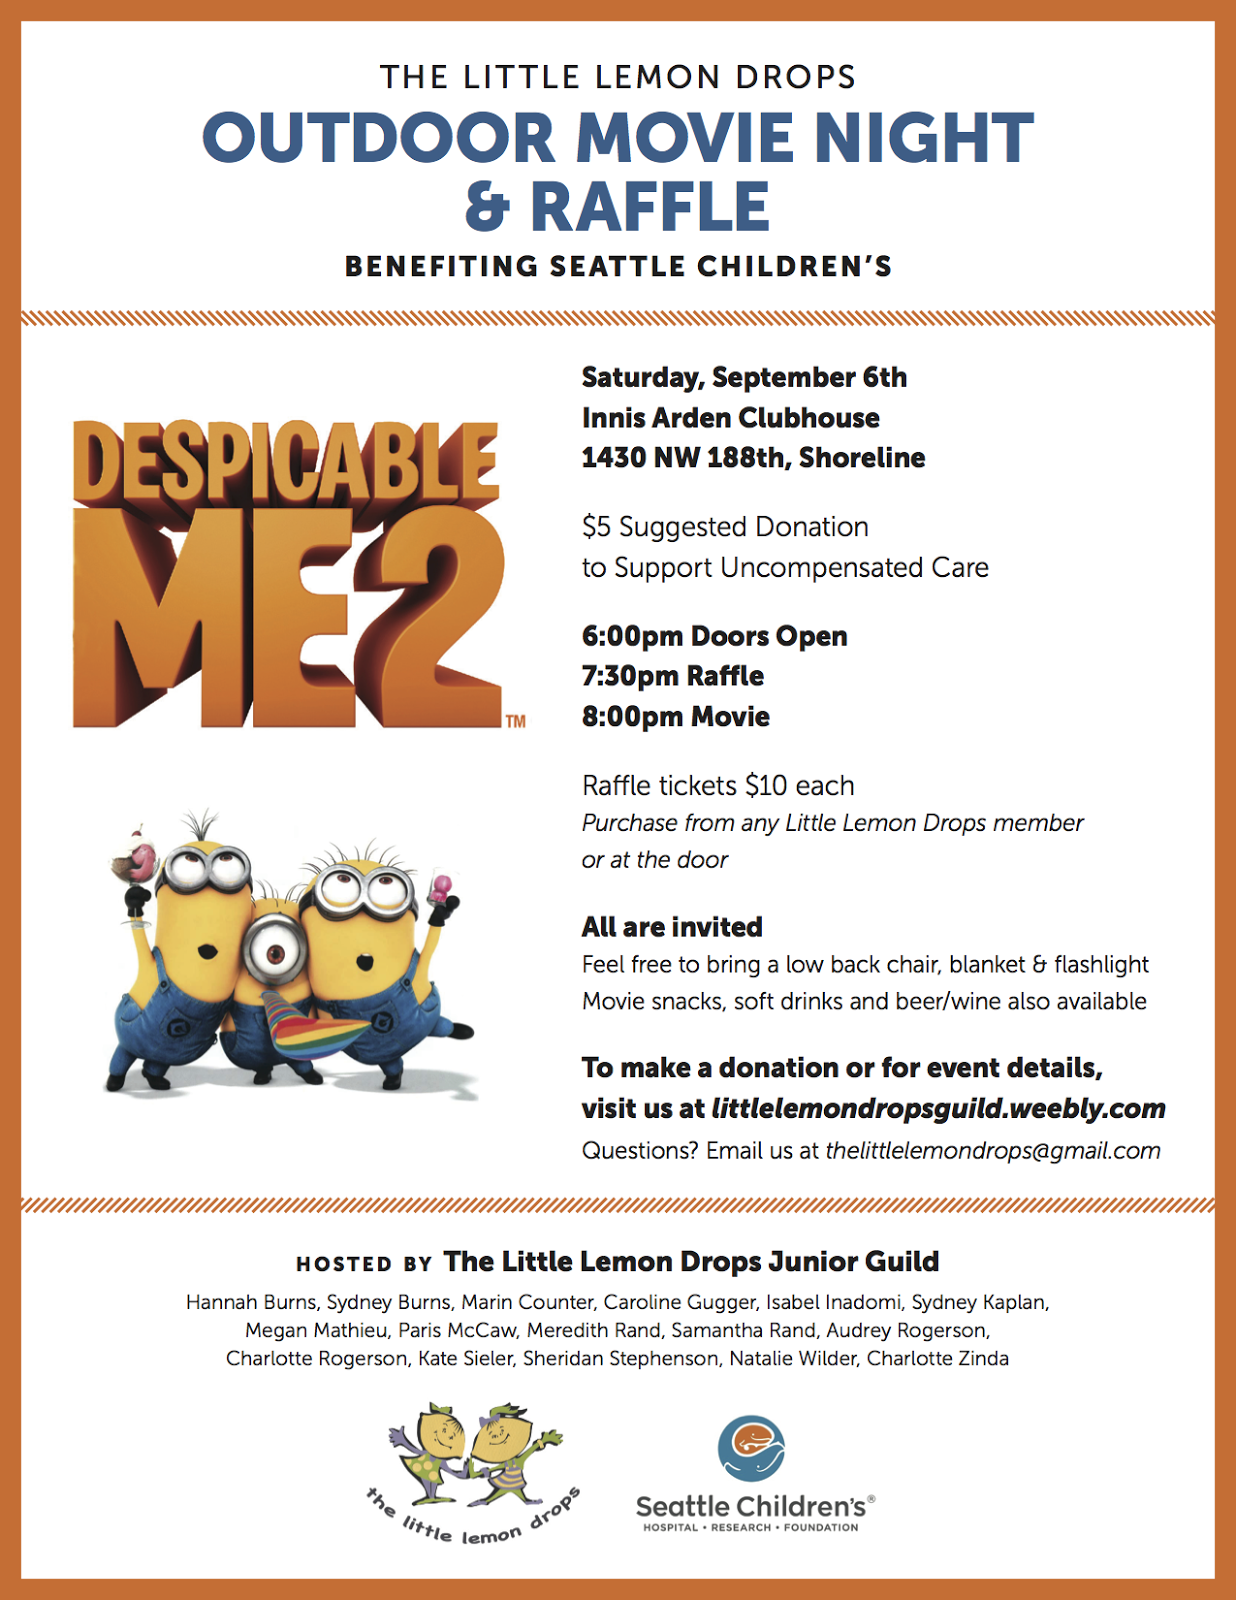 Shoreline area news 3rd annual little lemon drops outdoor movie chocolate factory tours gift card trees movie night baskets a despicable me minion cake restaurant gift certificates and so much more xflitez Images